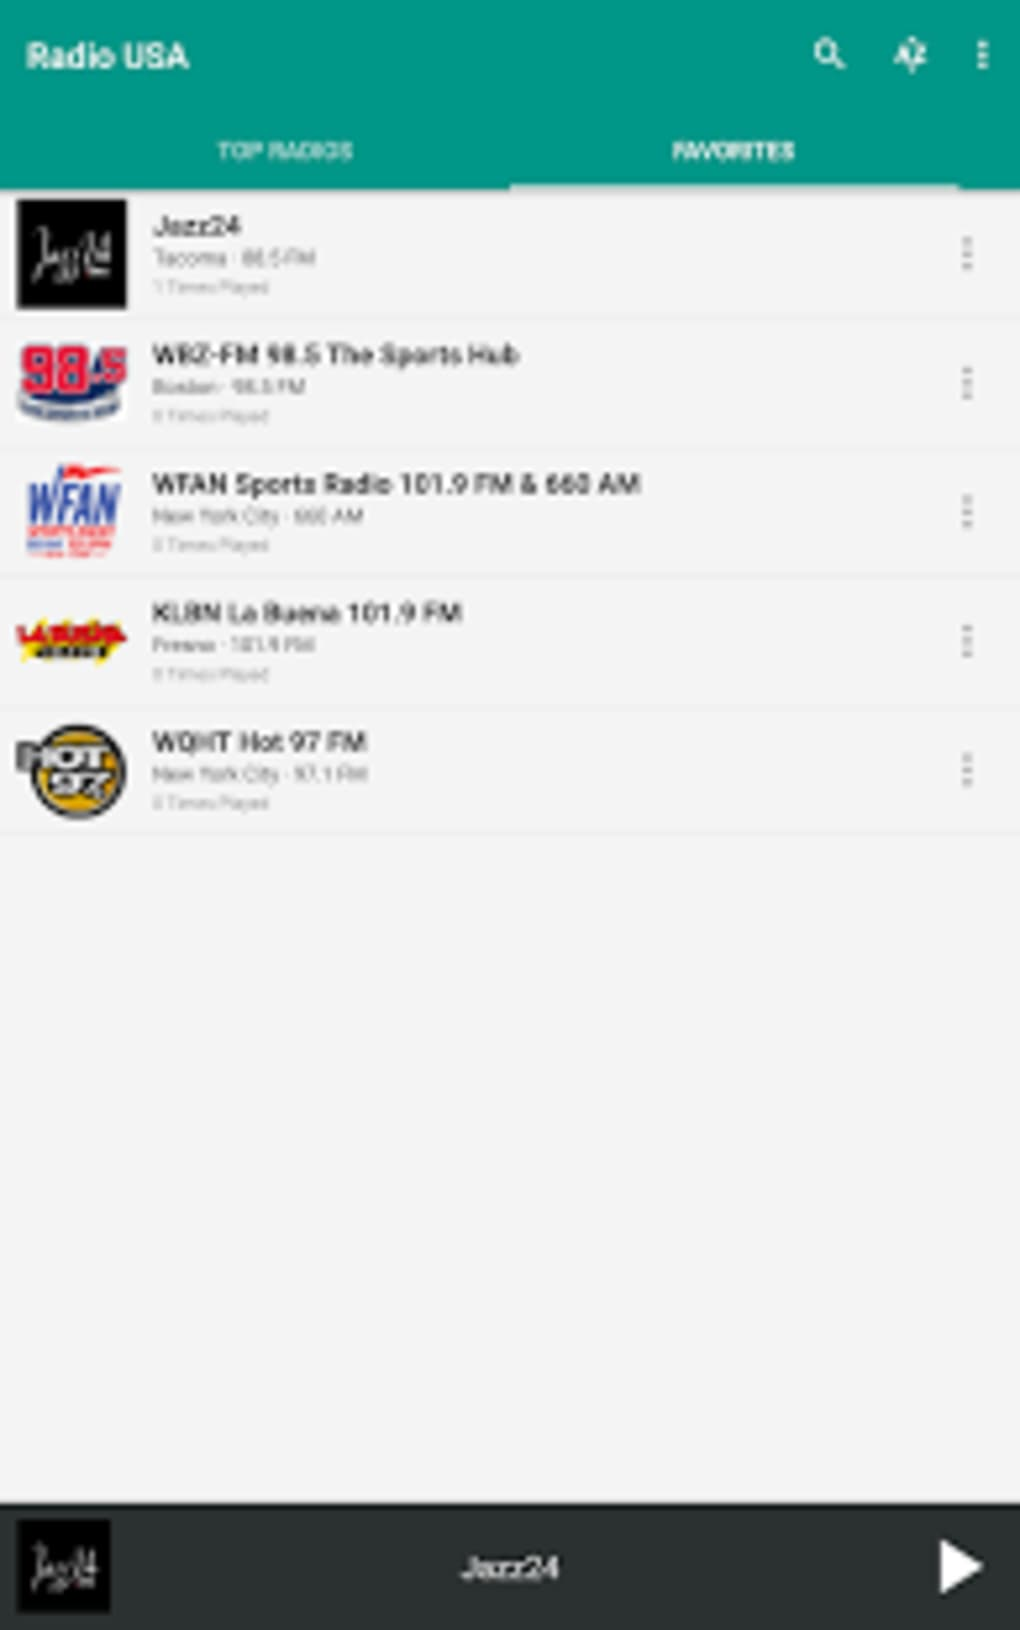 Radio USA for Android - Download